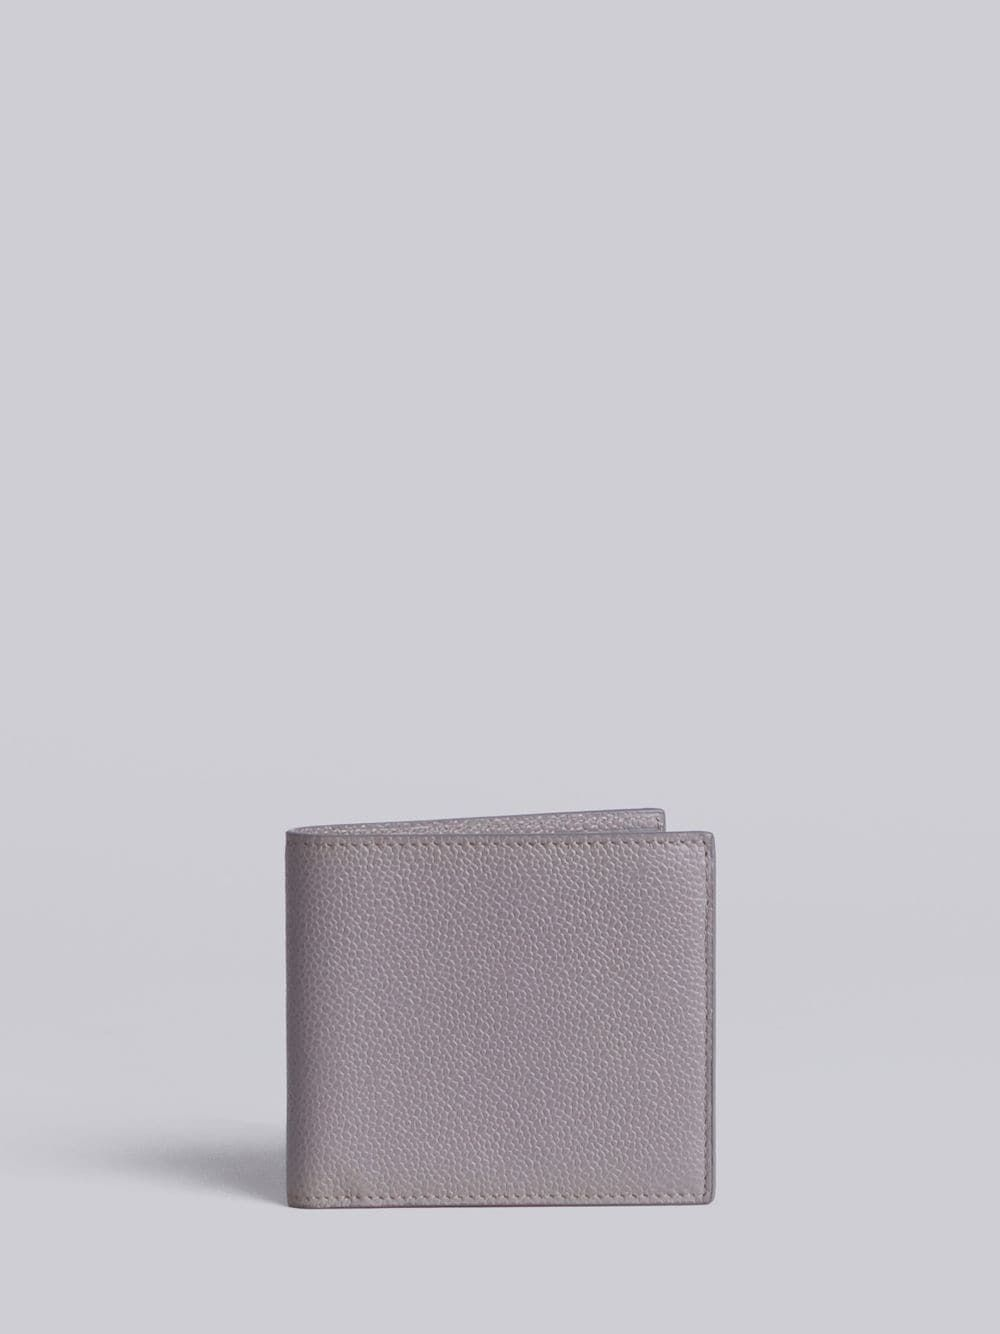 632165e57d0e THOM BROWNE THOM BROWNE BILLFOLD WALLET IN GREY PEBBLE GRAIN.  thombrowne